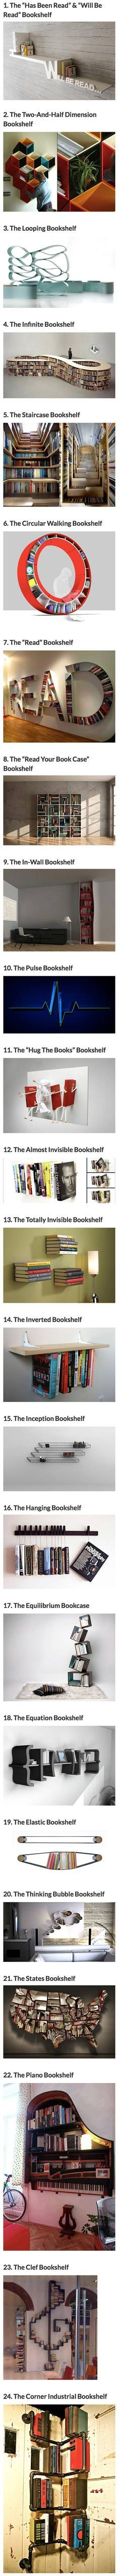 best in my room images on pinterest mugs objects and apartment